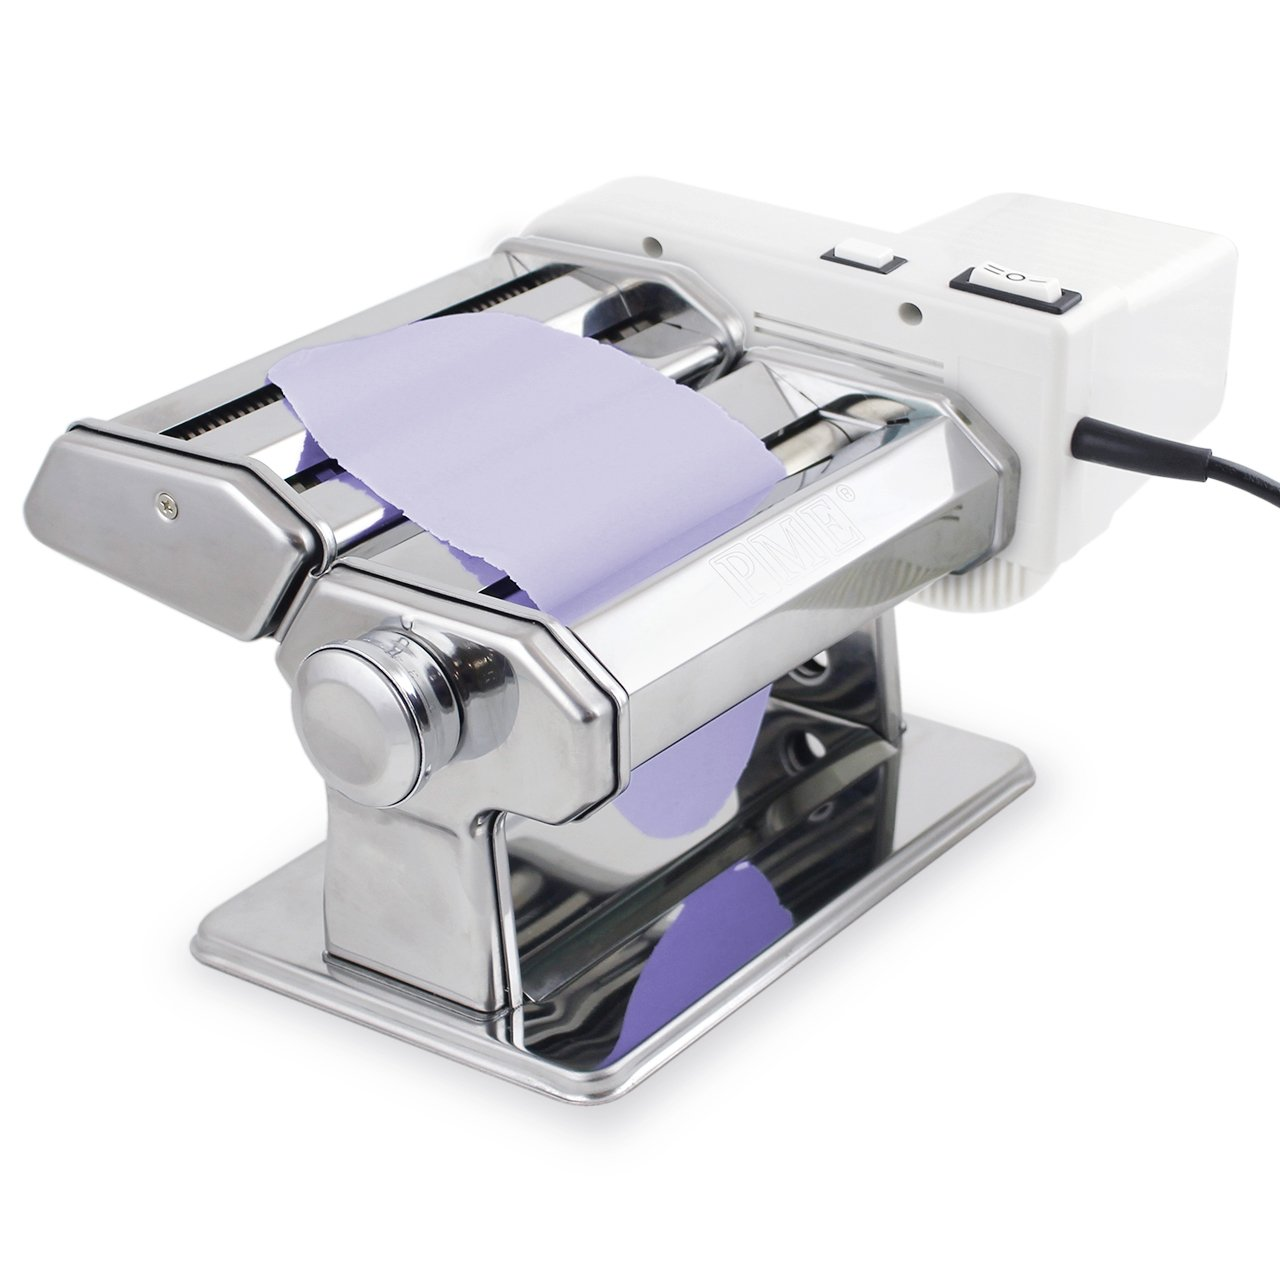 Electric Sugarcraft Roller & Strip Cutter with US Plug by PME